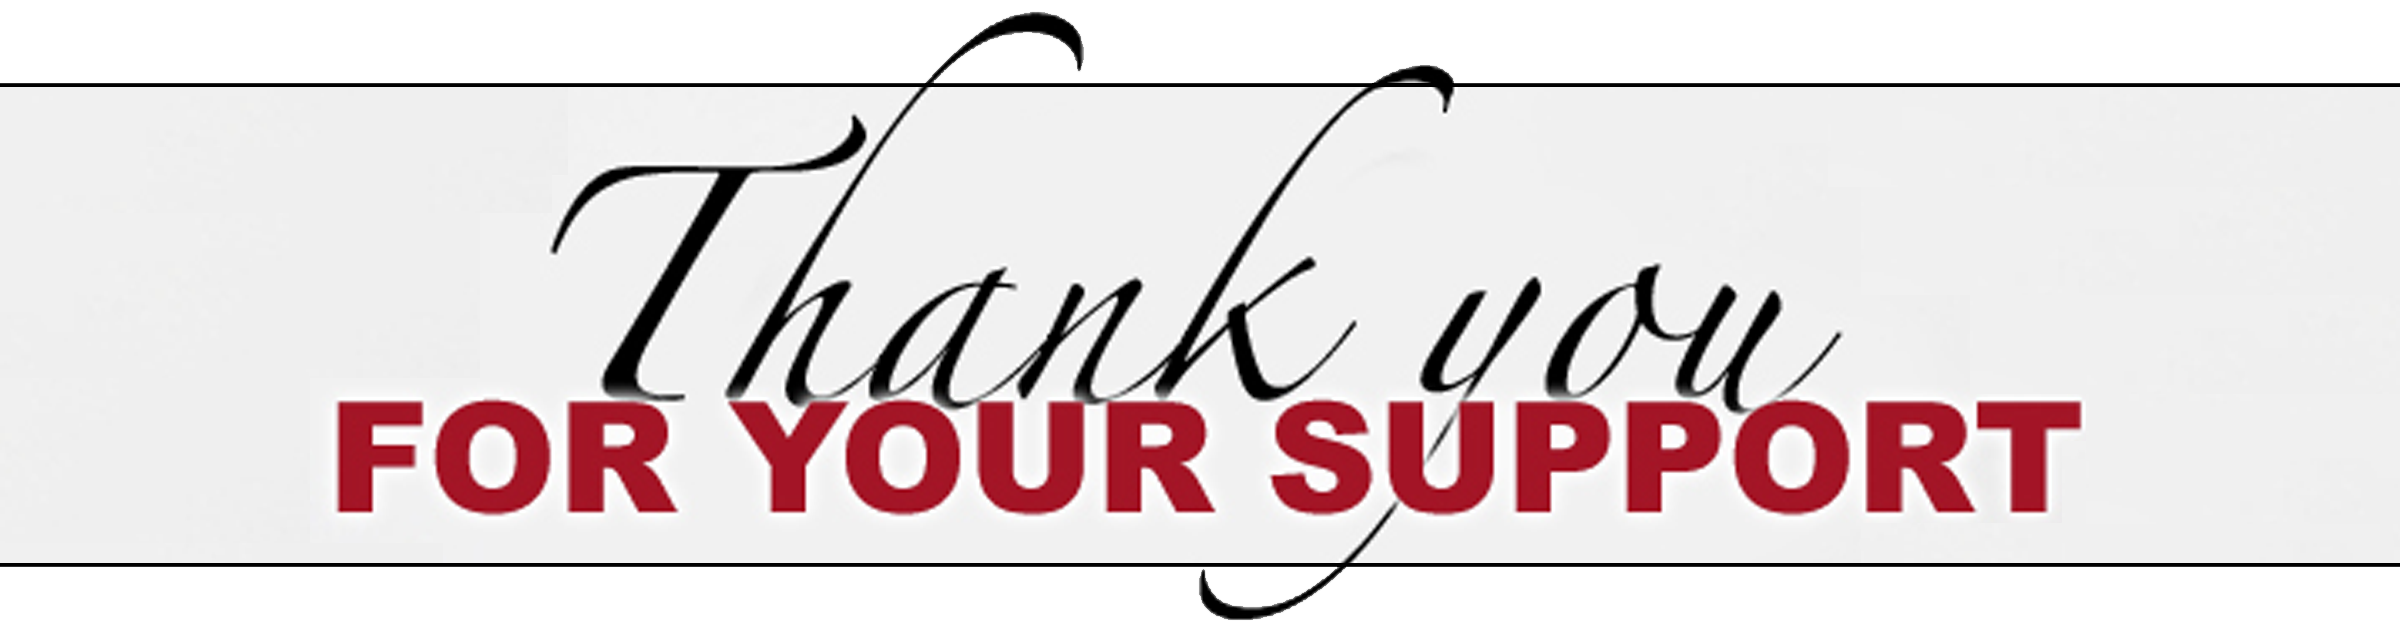 thank you for your support brenda everson shaw